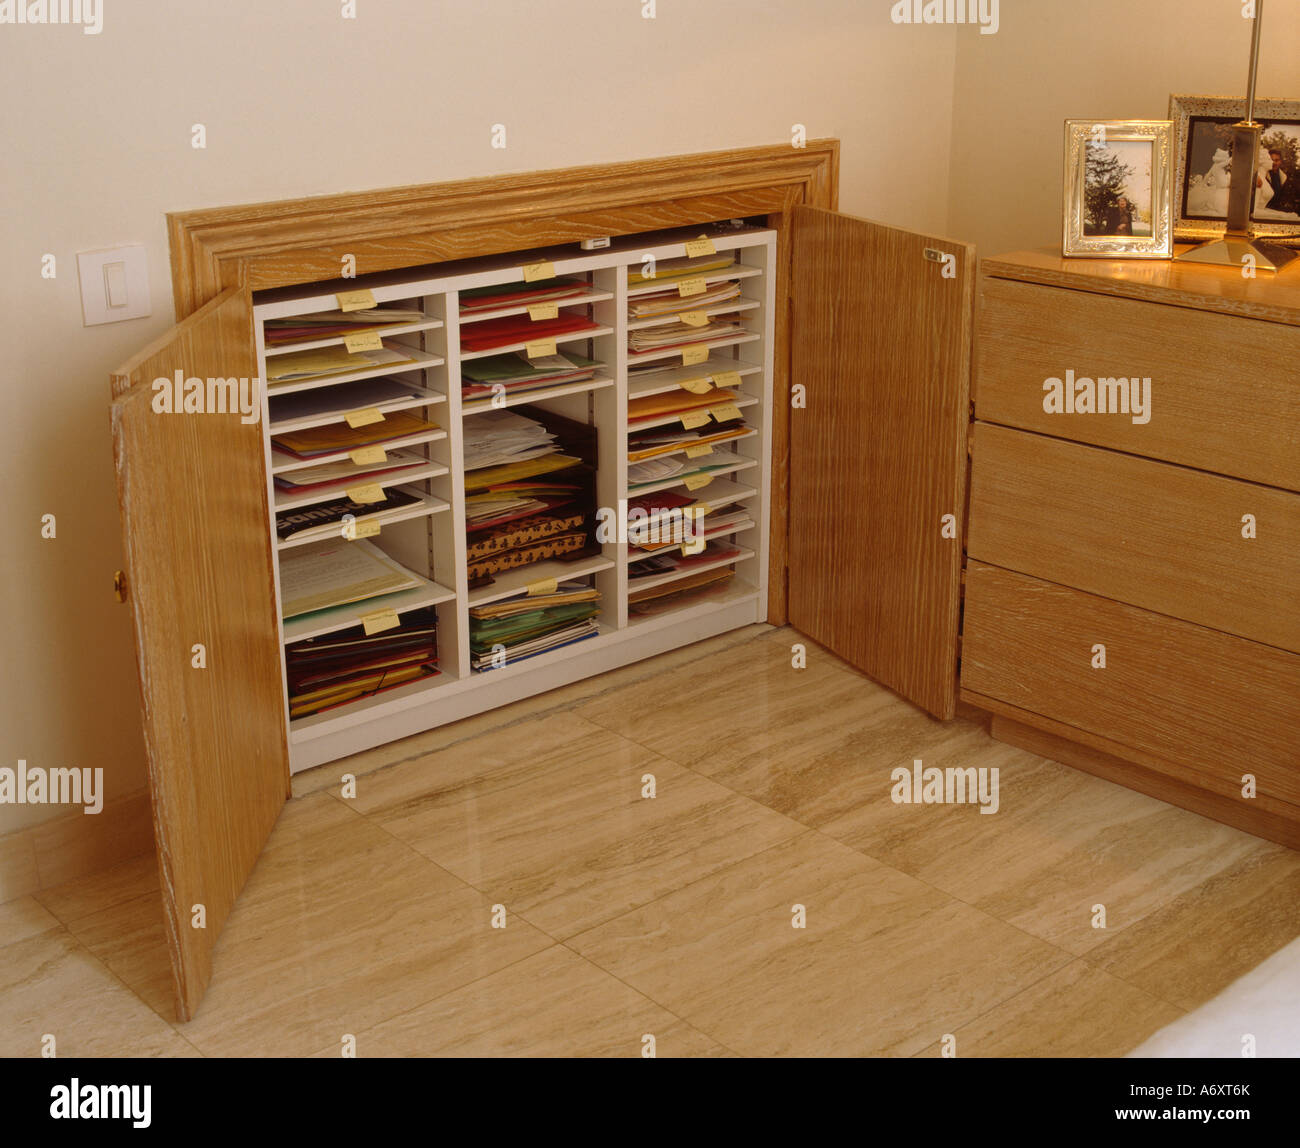 Close-up of plans shelves in recessed cupboard with wooden doors in wall of modern studio with wooden flooring - Stock Image